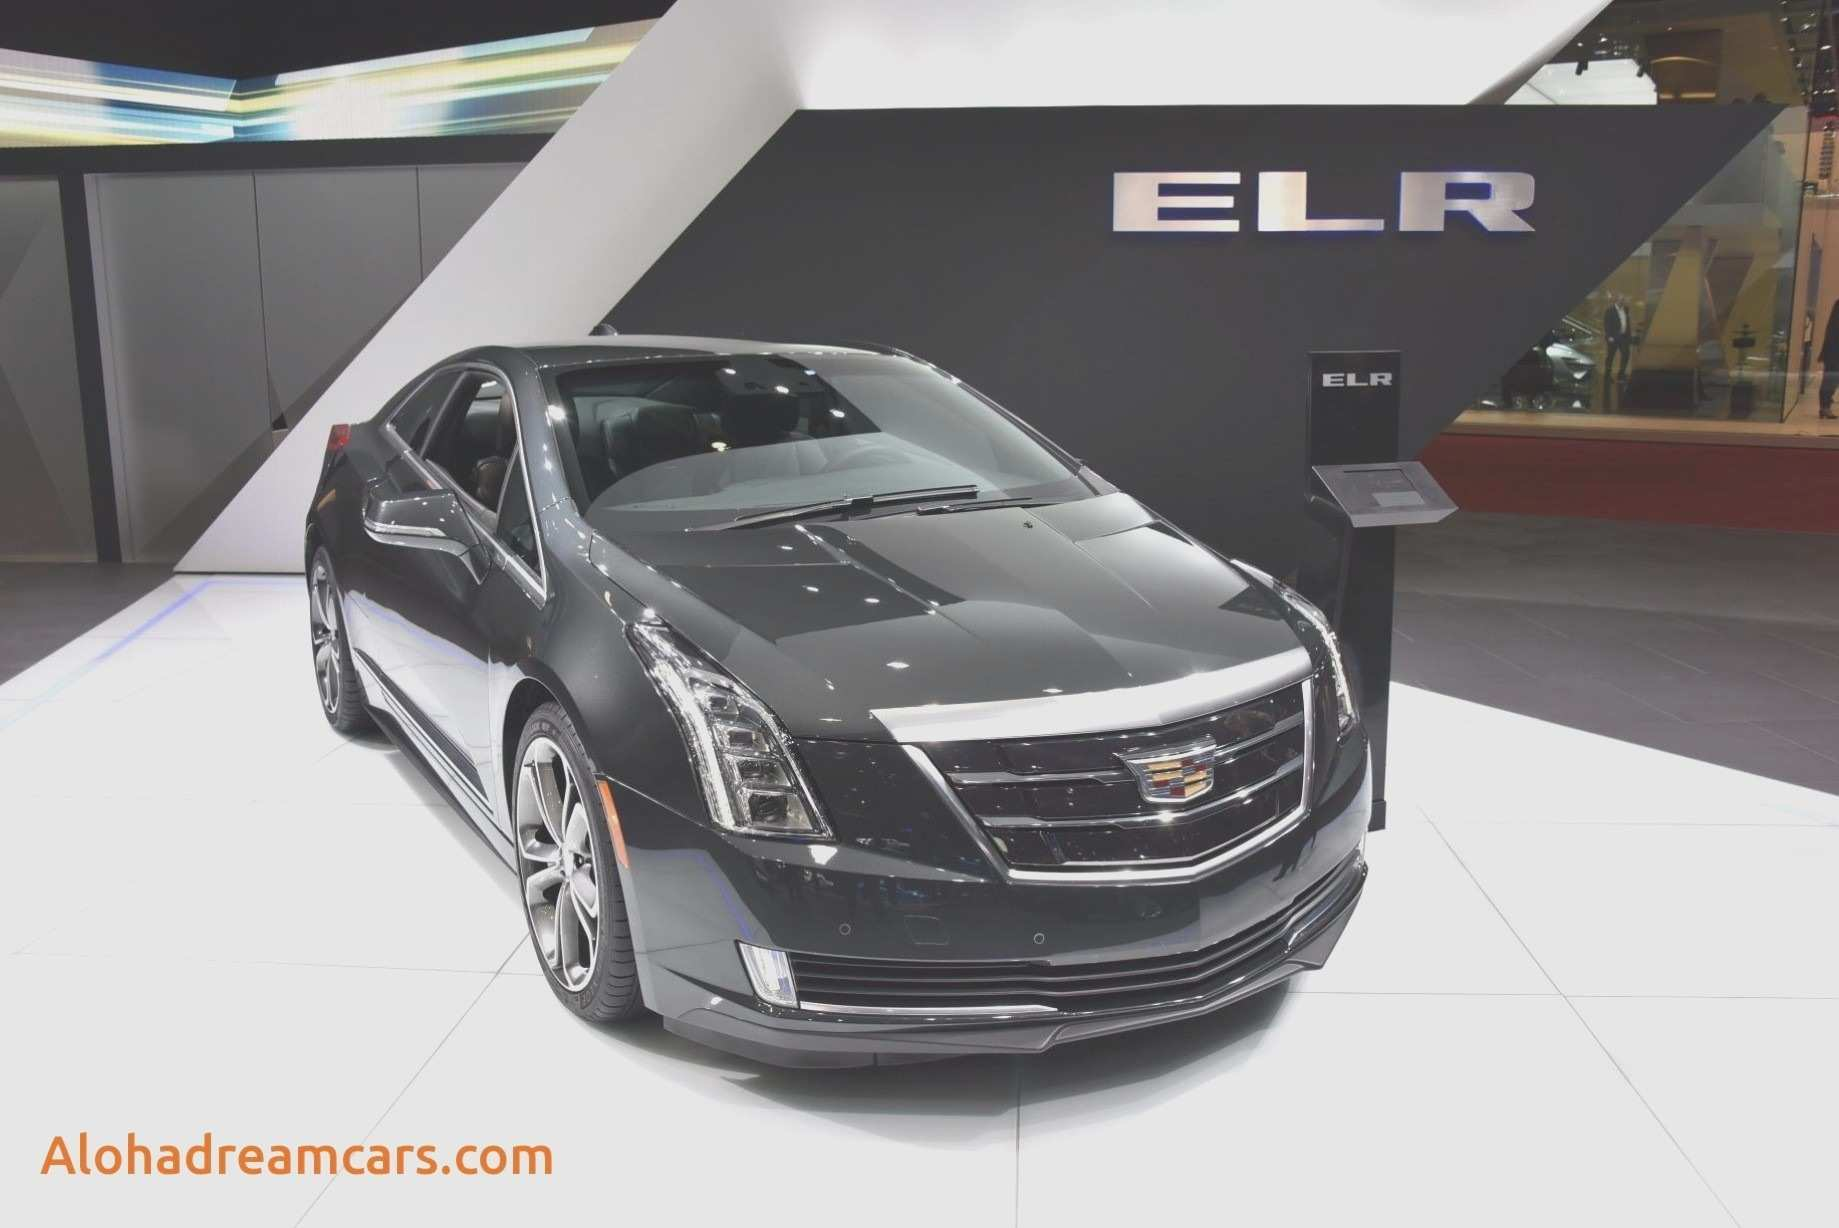 82 All New 2020 Cadillac ELR S Interior